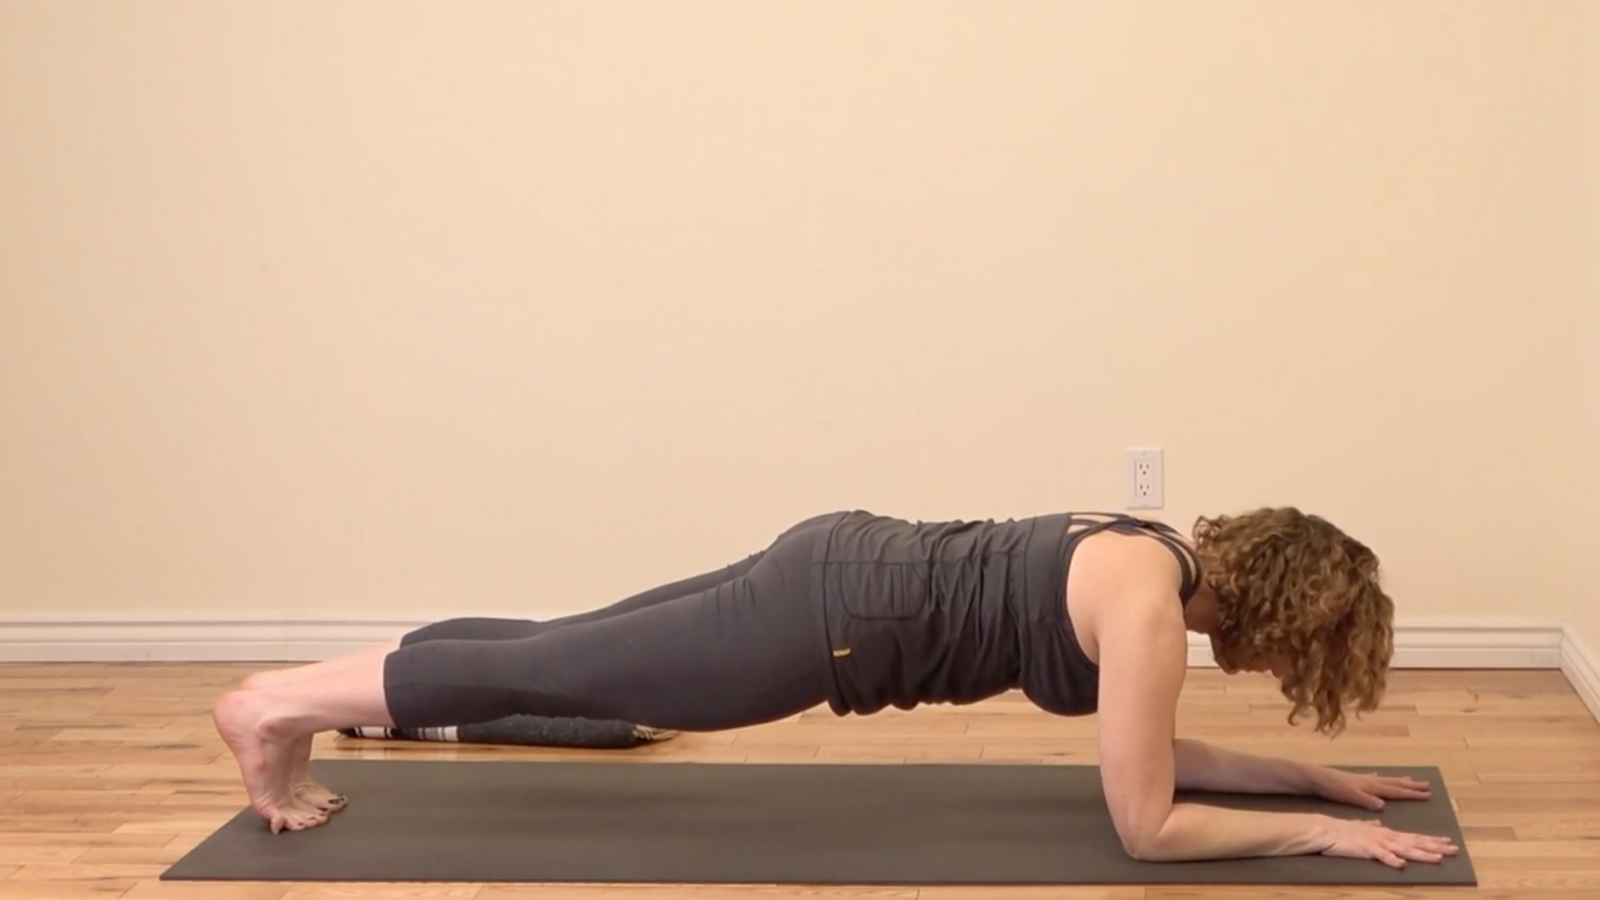 Practicing Forearm Plank or Ardha Phalakasana to strengthen arms, shoulders, and the core